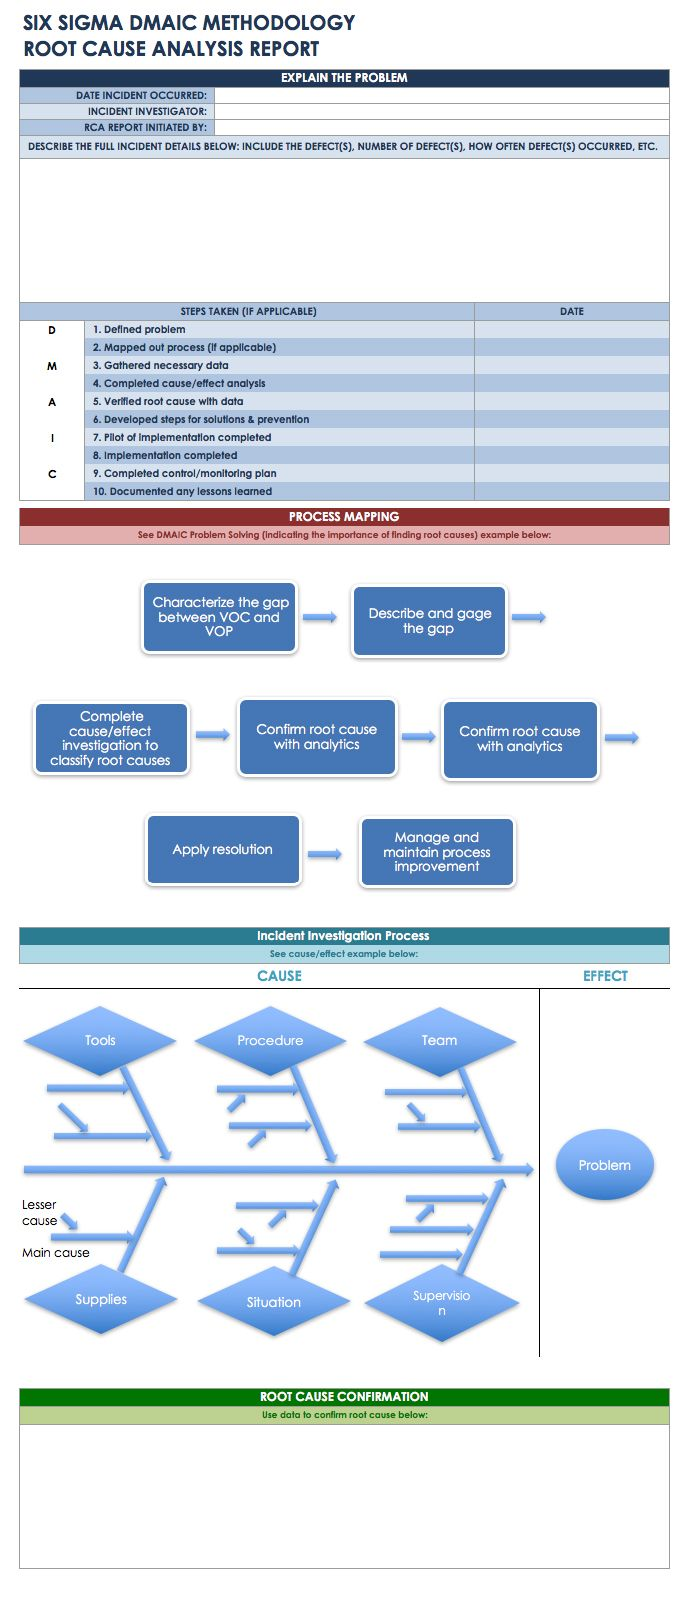 The Complete Guide to Lean Project Management | Smartsheet